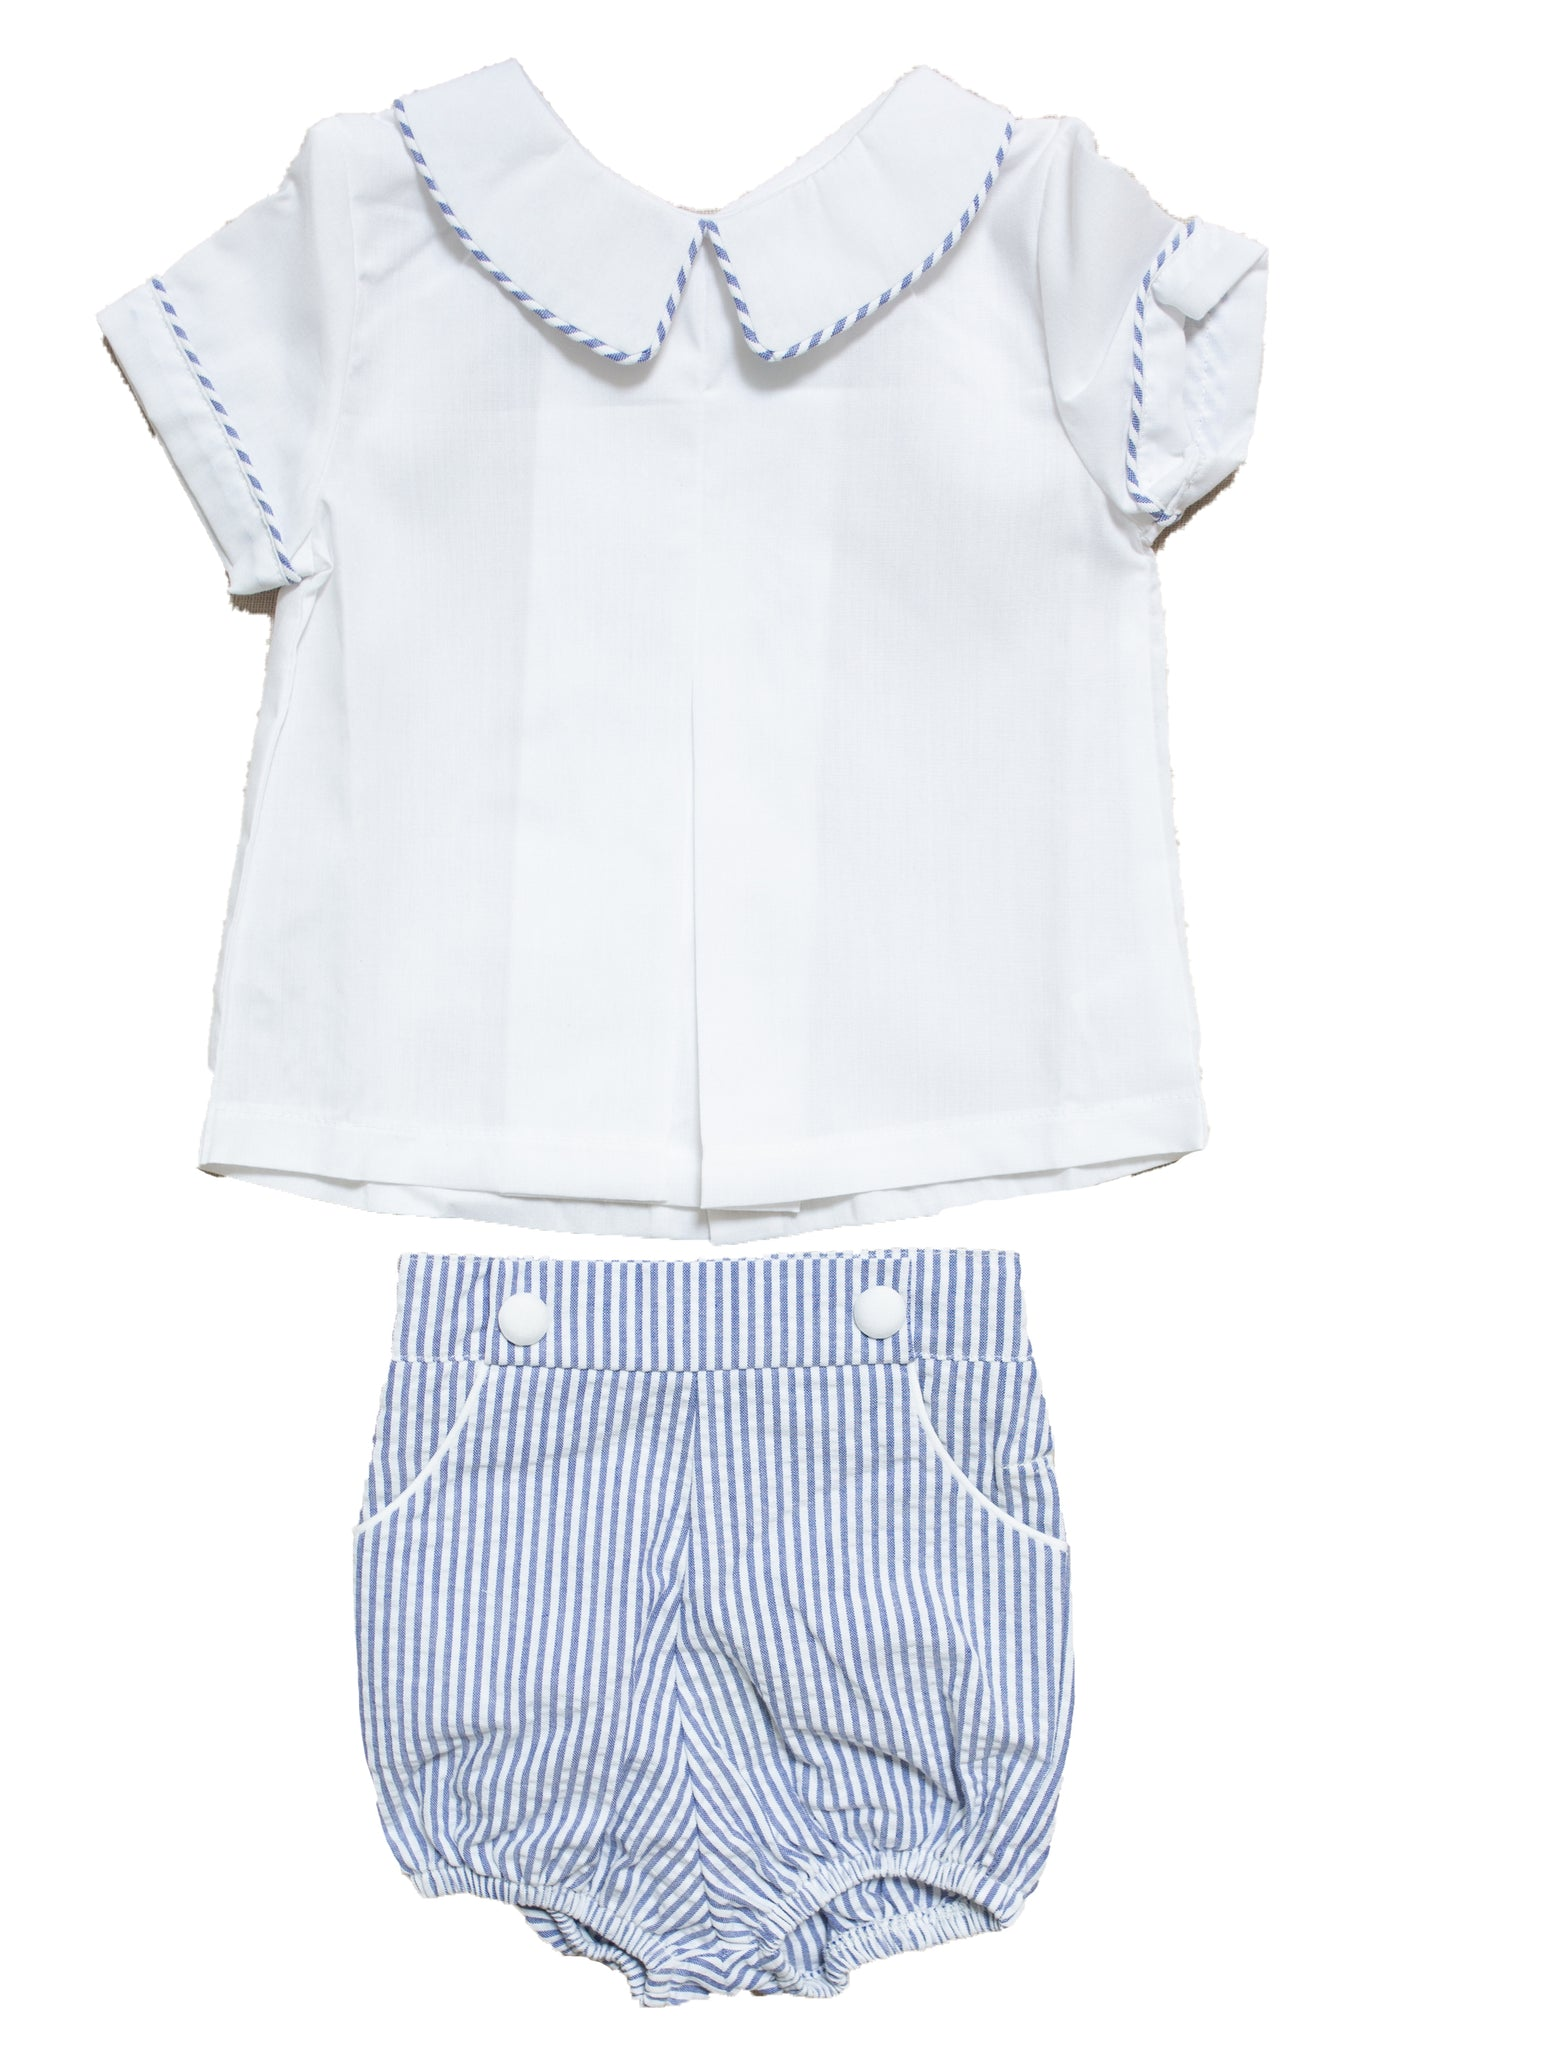 White and Blue Stripe Shortsuit - Amy Berry Home